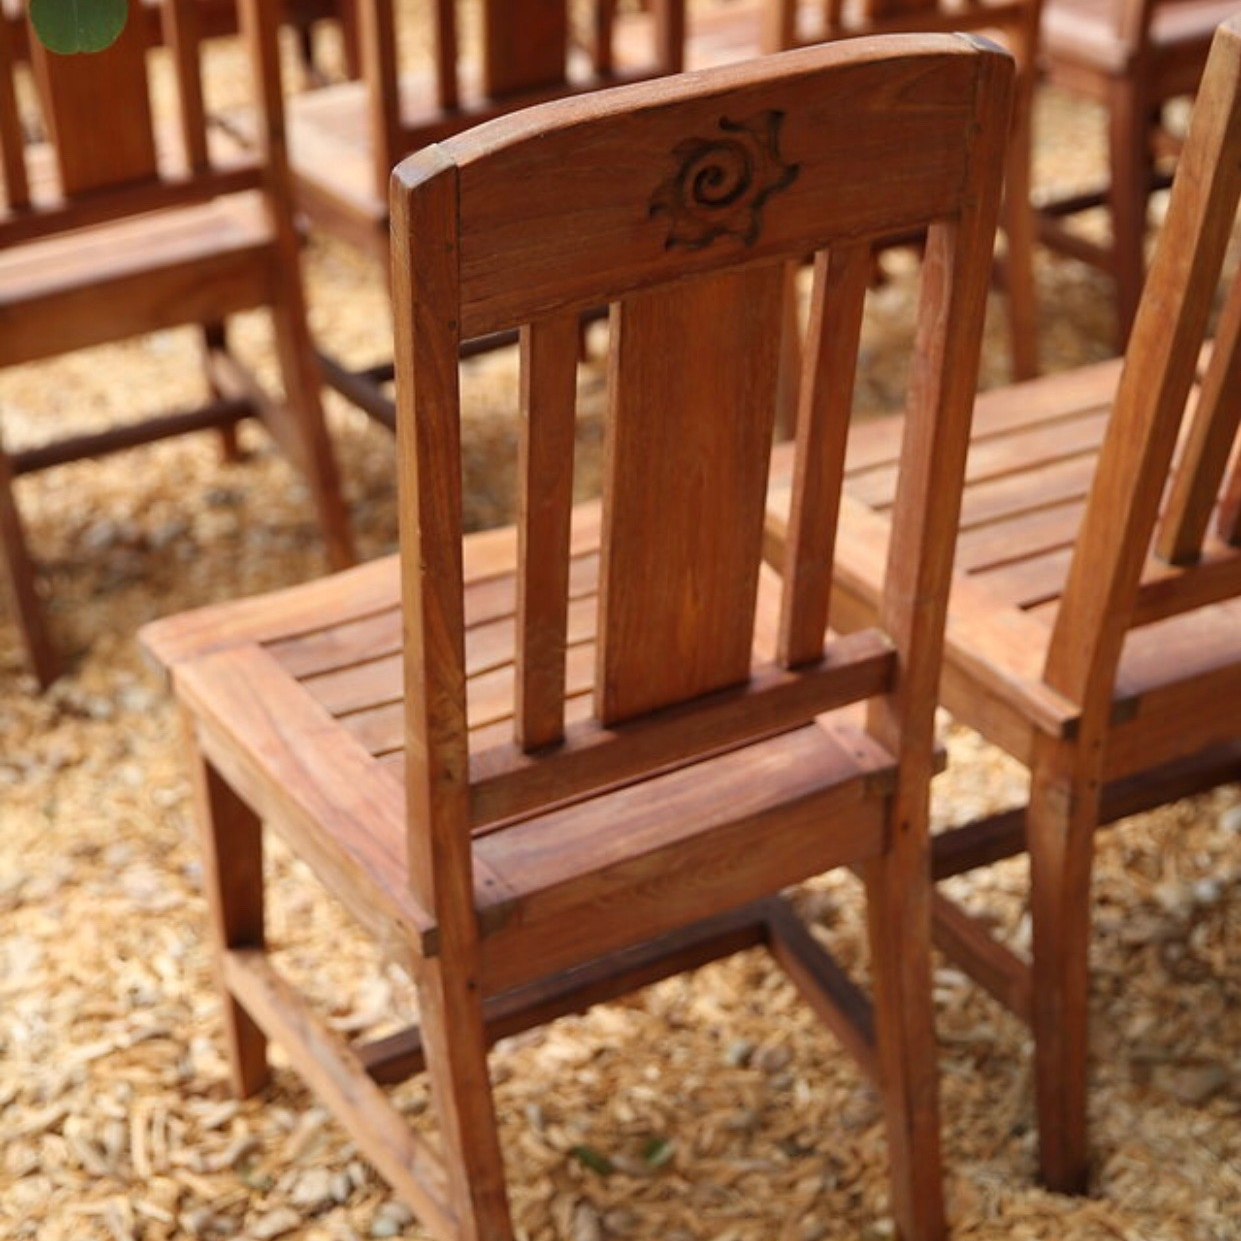 Sun Chair   Very sturdy oak shabby chic dining chair. Colors are varied. Great for that rustic look at a wedding.